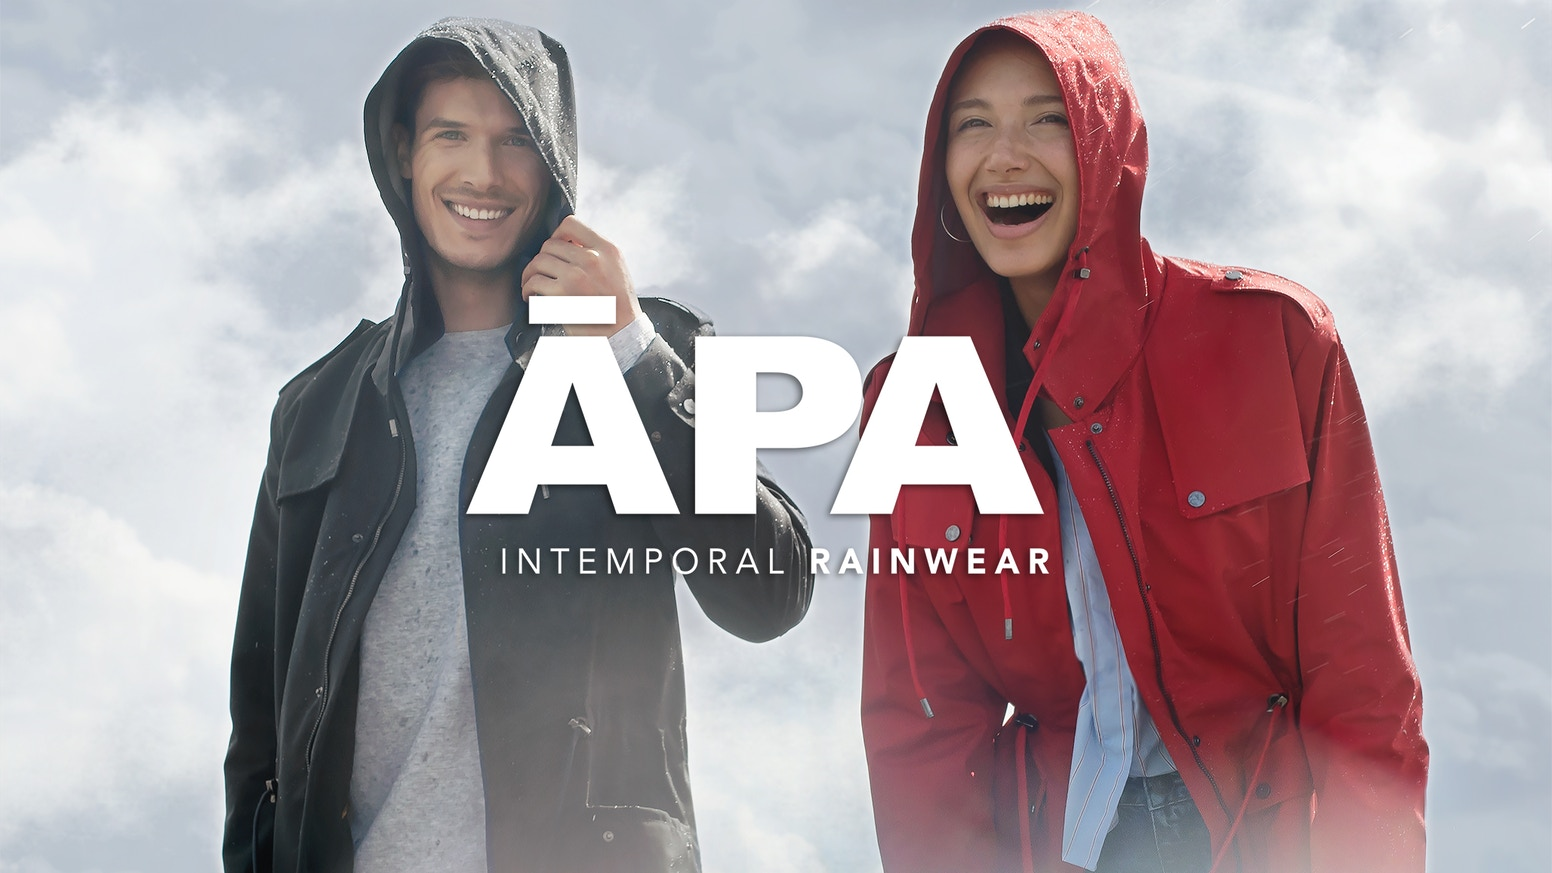 ĀPA is the Ultimate Coat for the Changing Urban Weather. Nano-Waterproof, Thermo-Adaptive, Breathable, Stylish, 100% Made in Europe